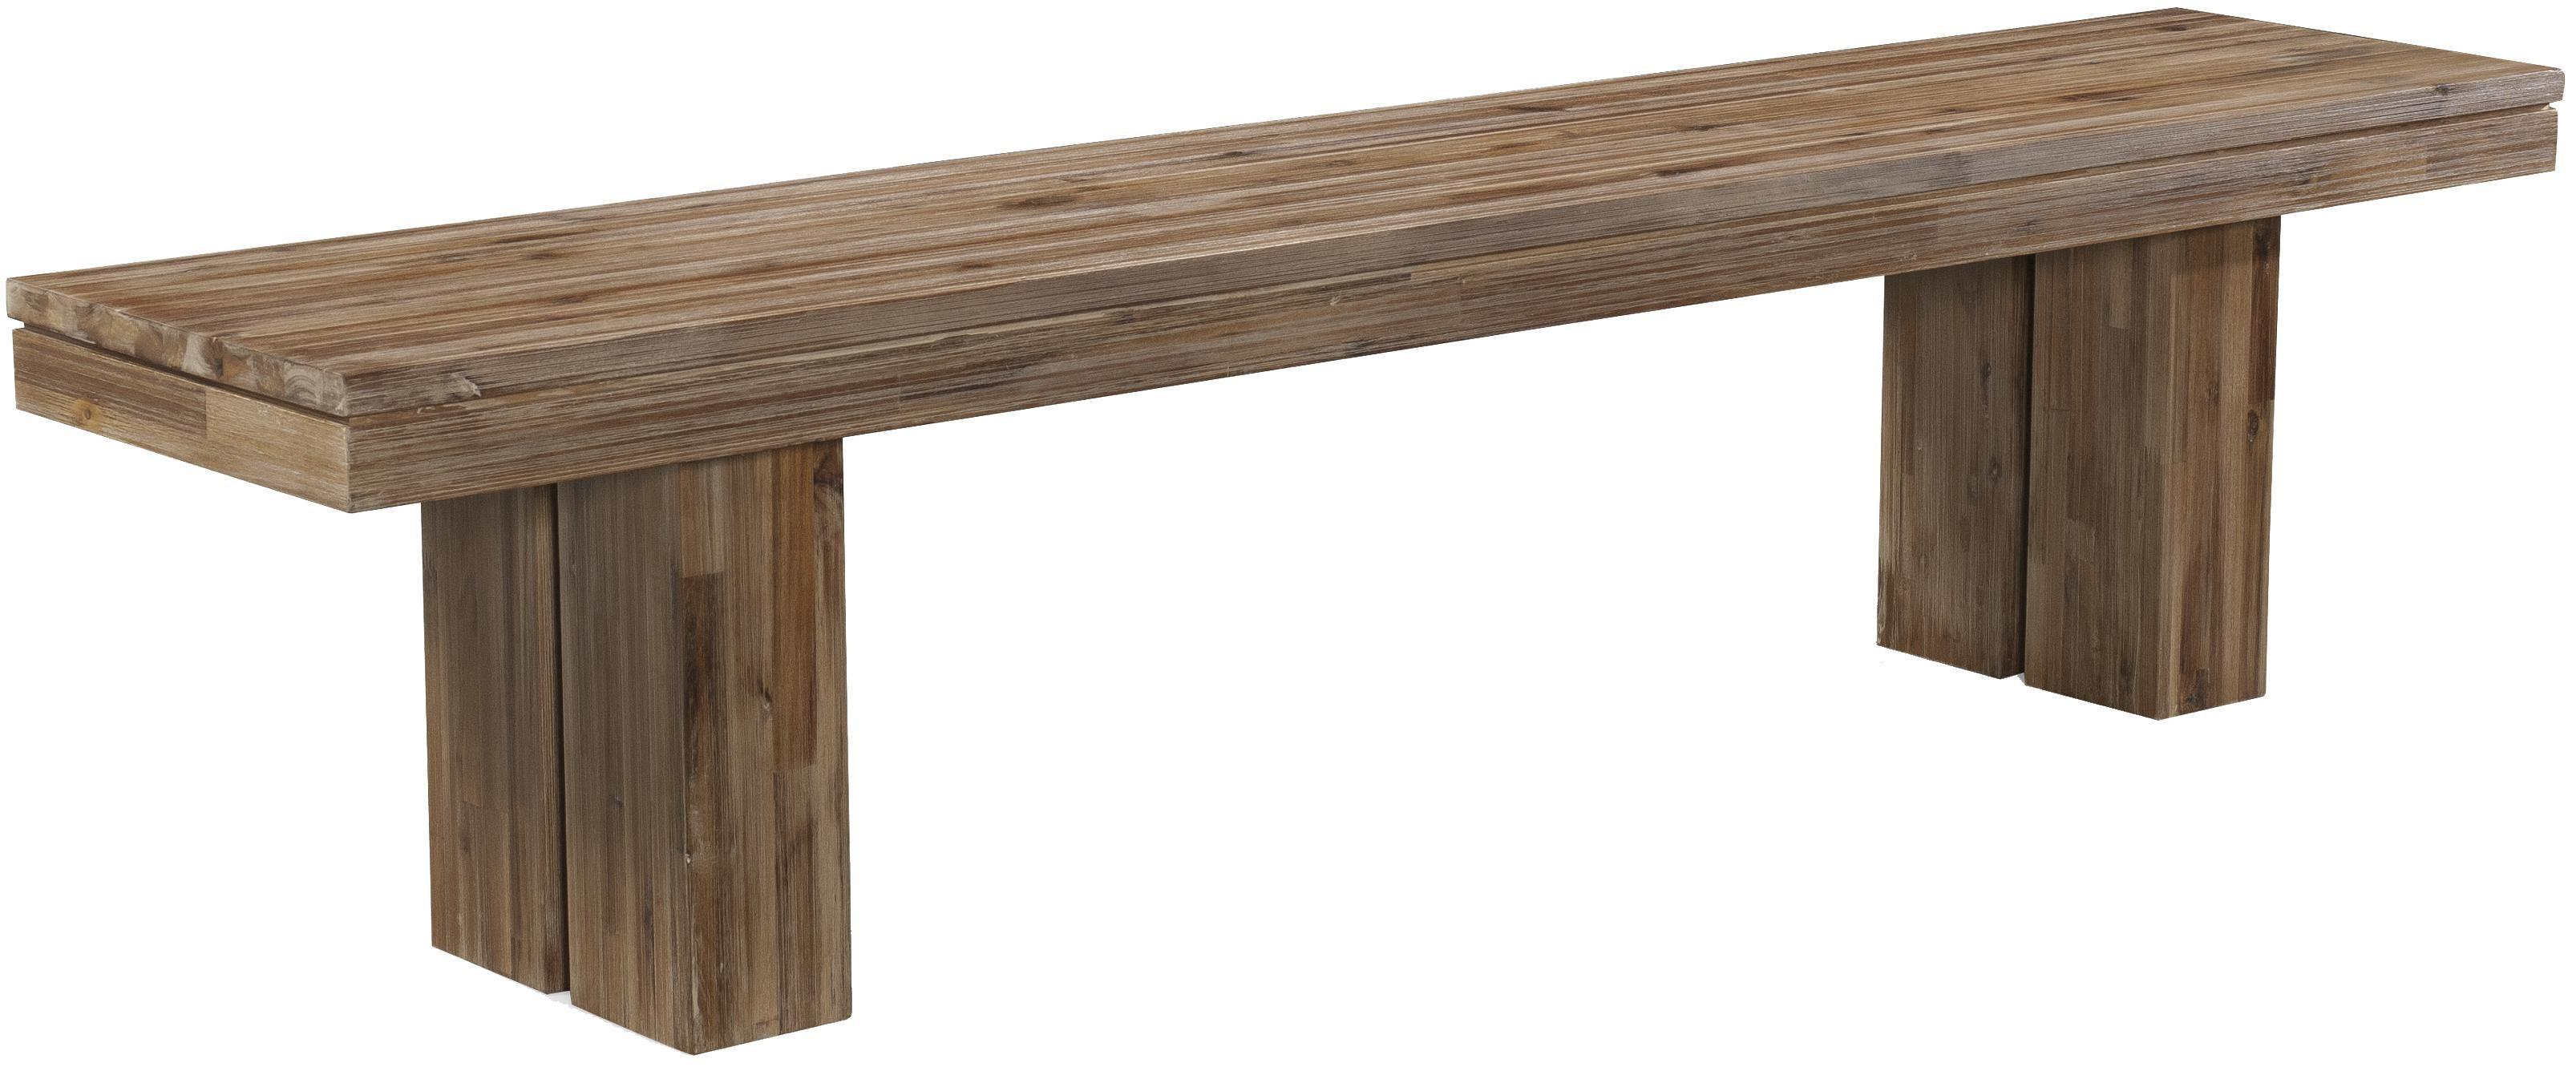 Acacia Wood Modern Rustic Dining Bench Rectangular